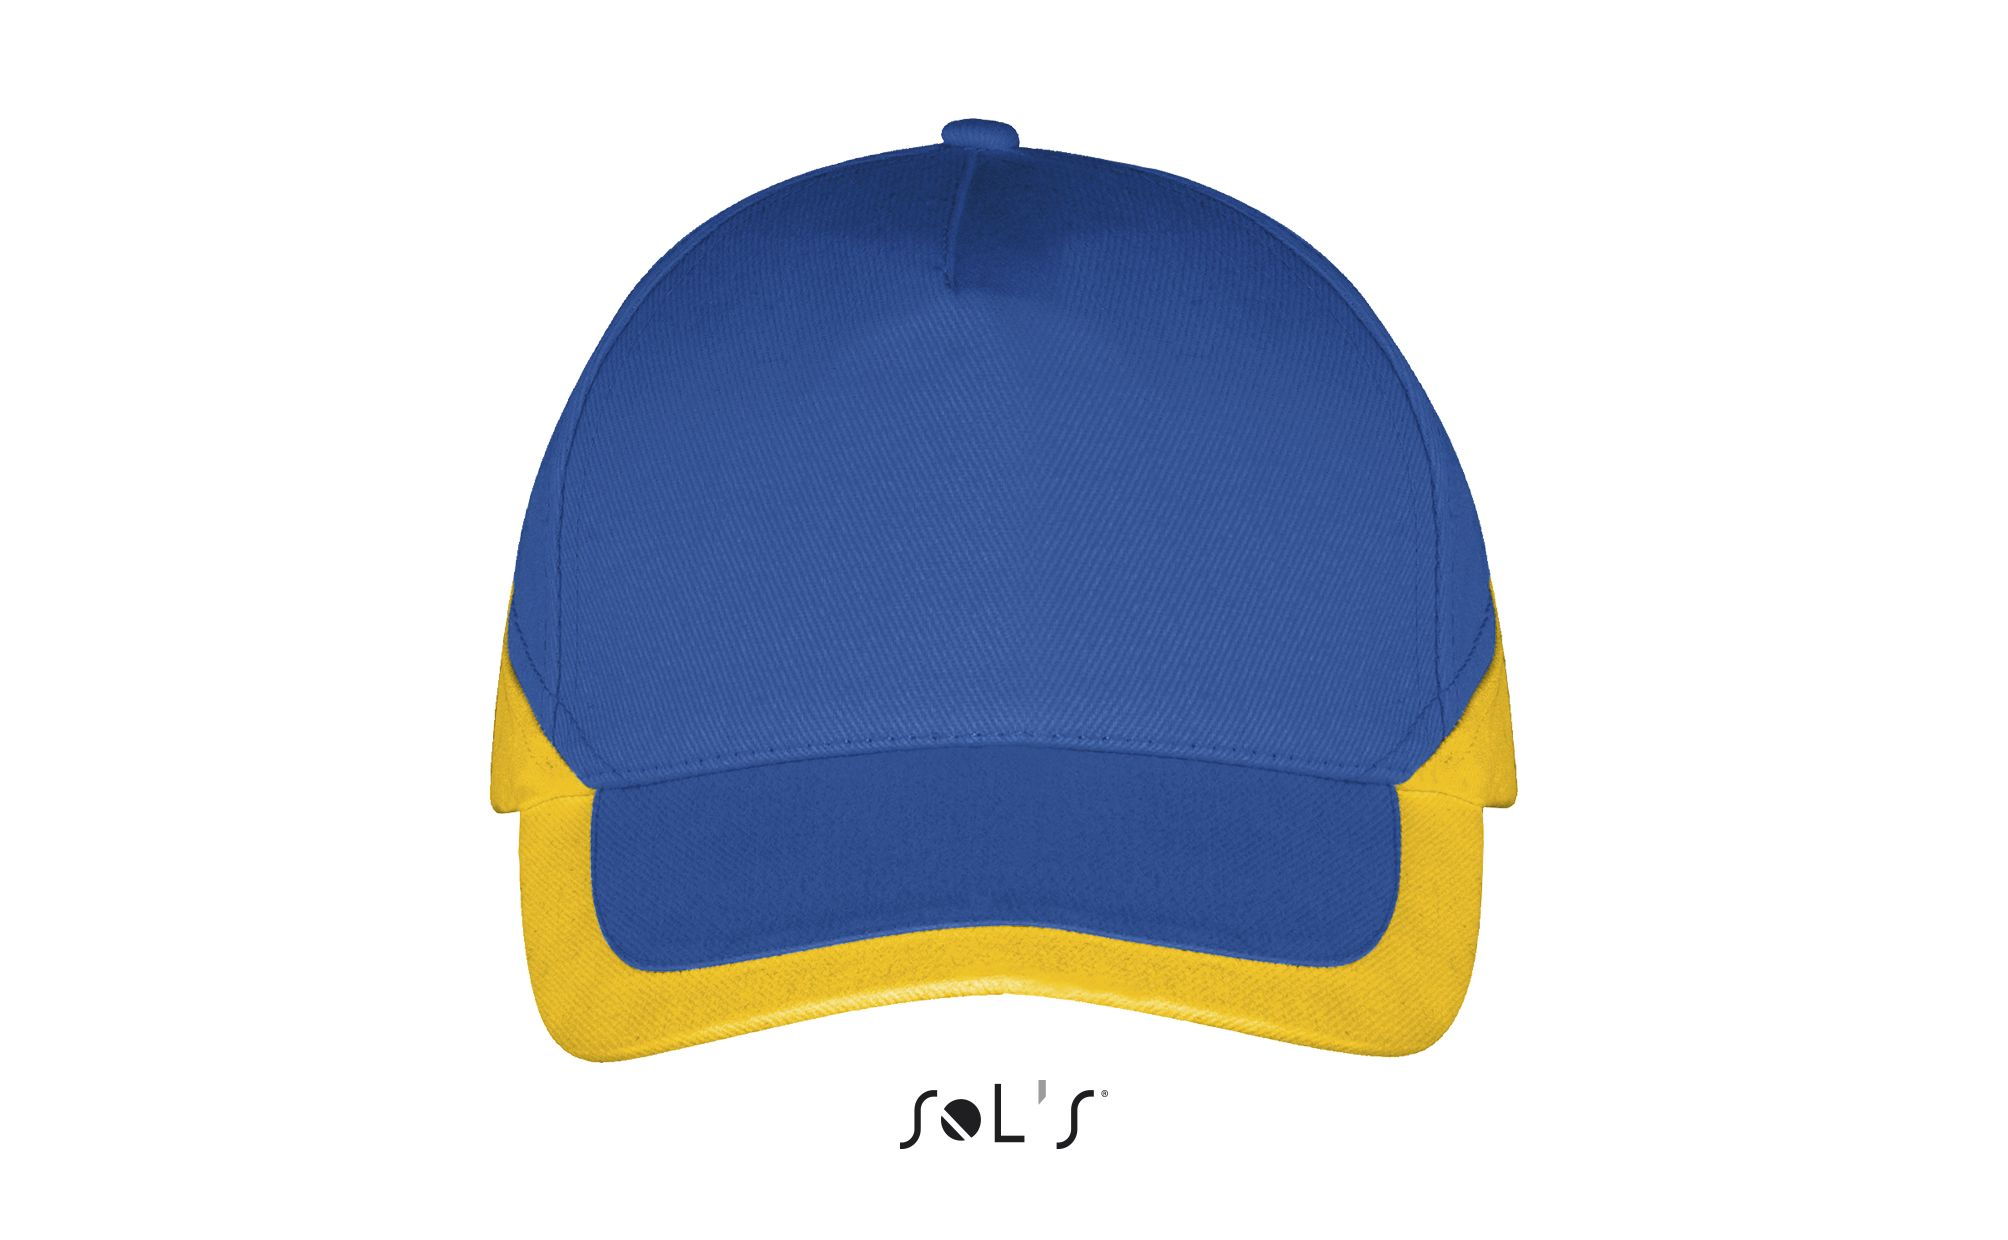 974 - Royal blue / Gold